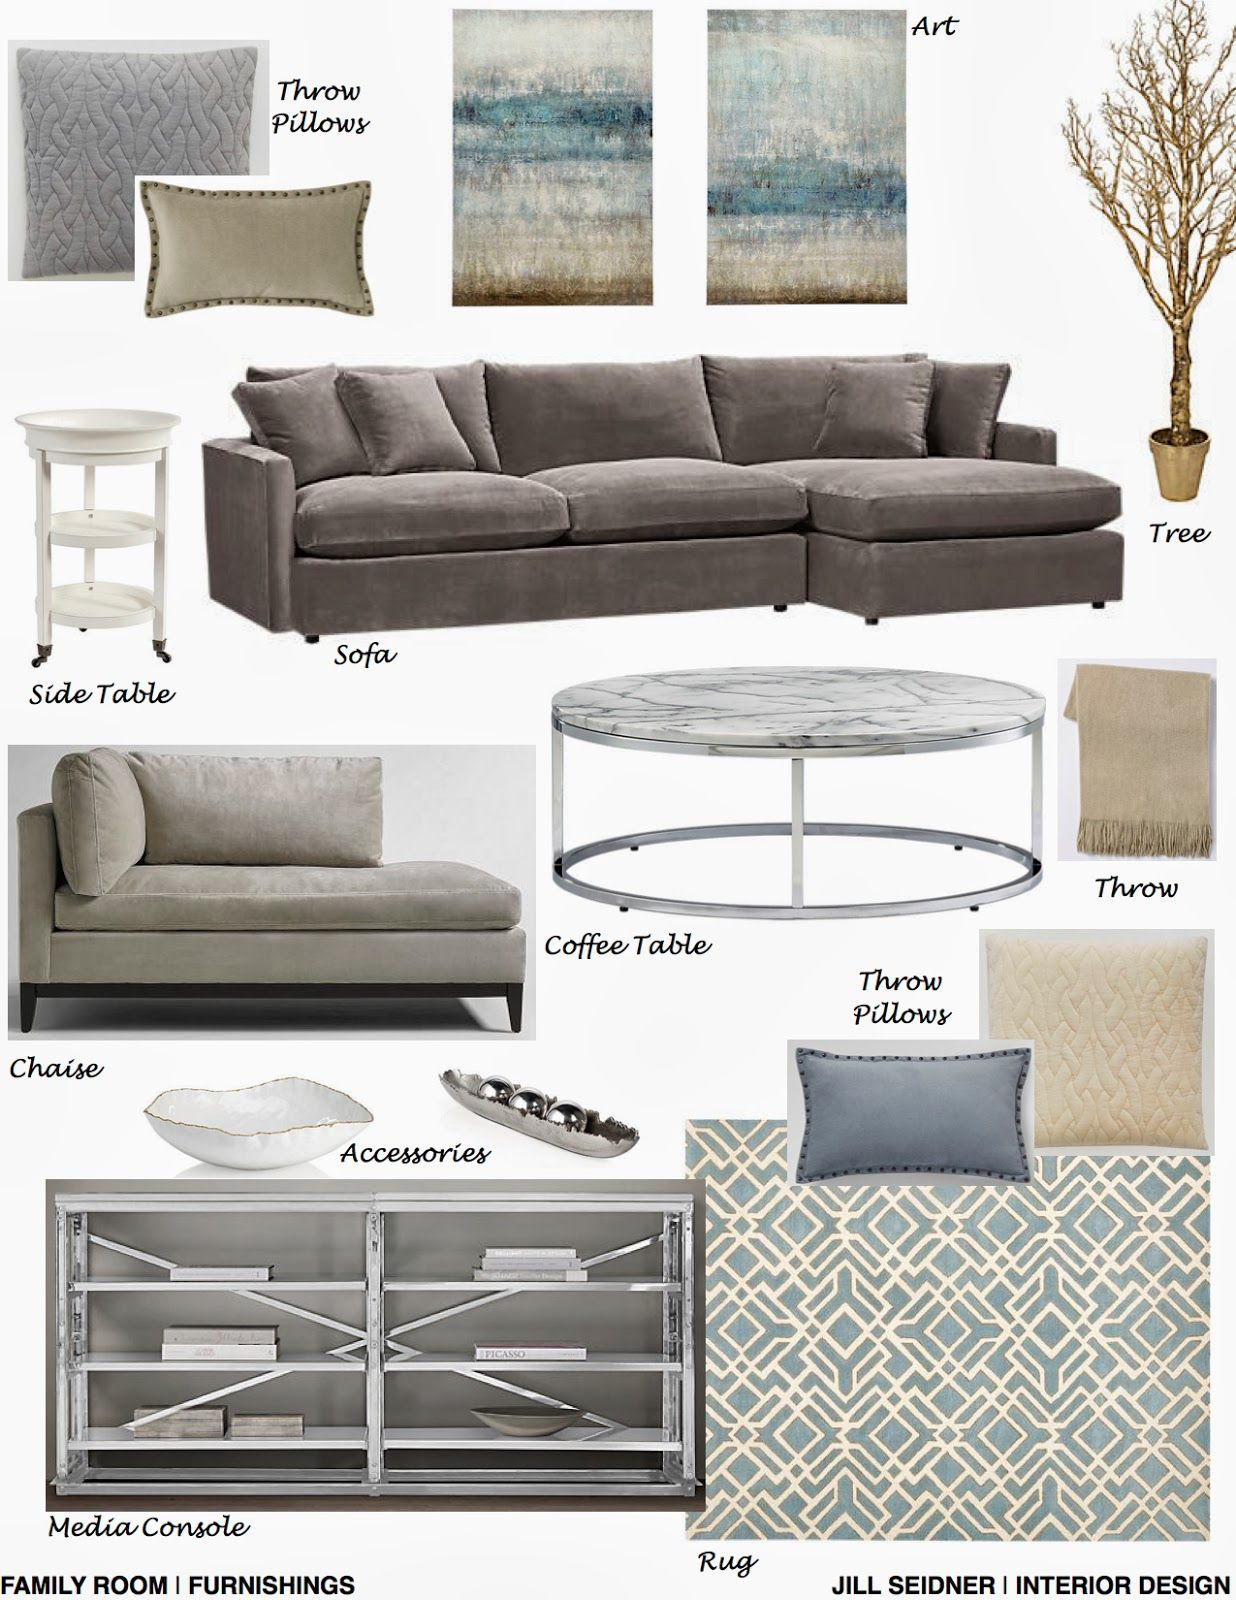 Looking For Interior Design Help I Offer A Complete Room Design Via Online Design For Anyone Anywhere Which In 2020 Interior Design Boards Family Room Design Interior Design